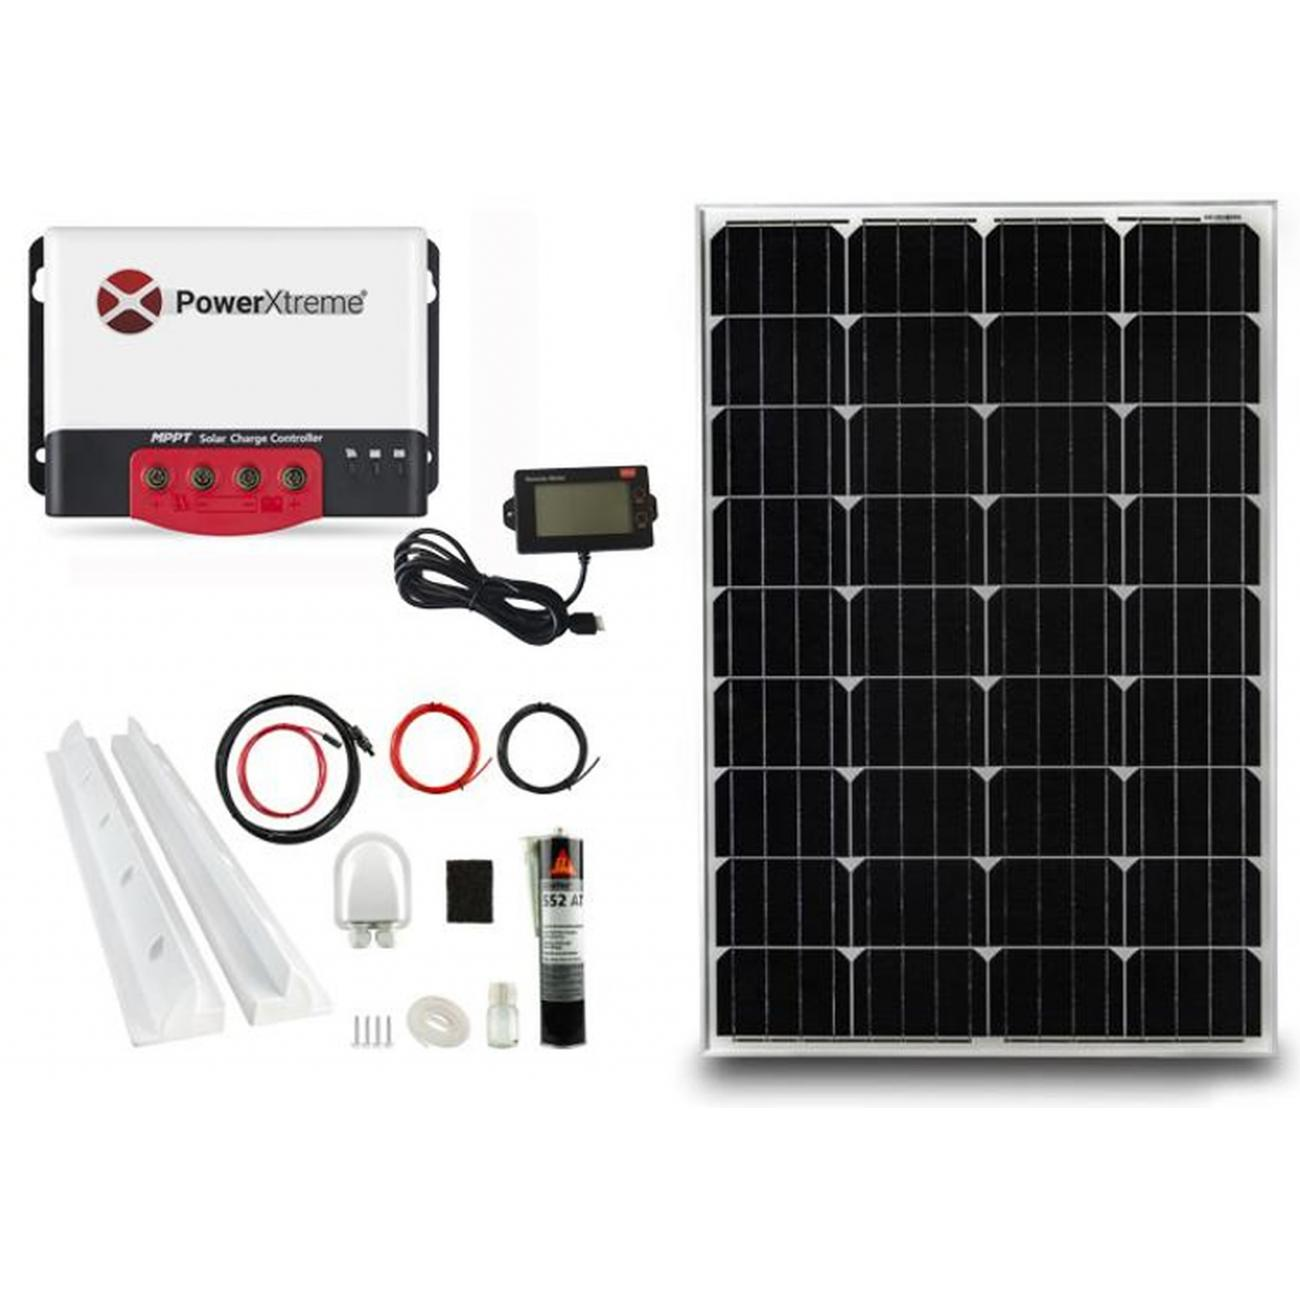 PowerXtreme XS20s Solar MPPT With Display 100W Package